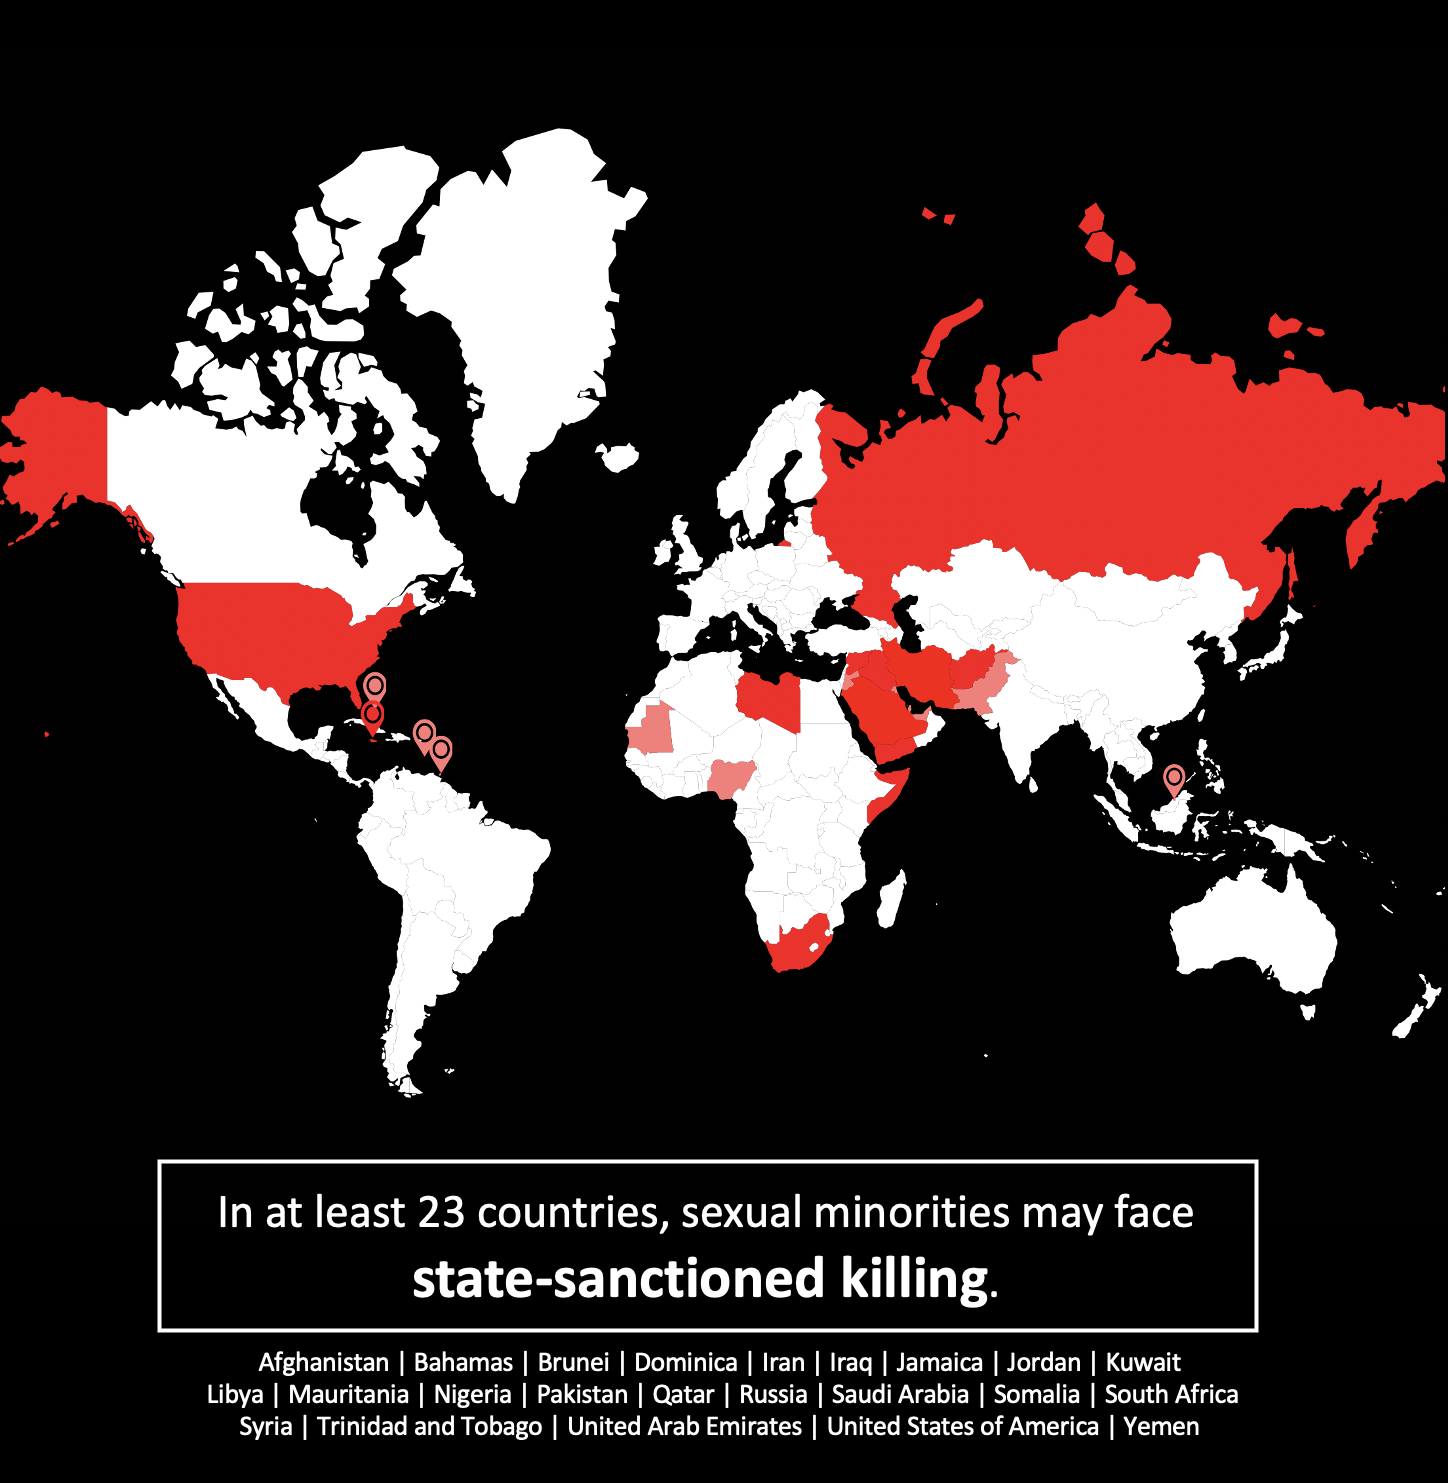 Map that says that in at least 23 countries, sexual minorities may face state-sanctioned killing